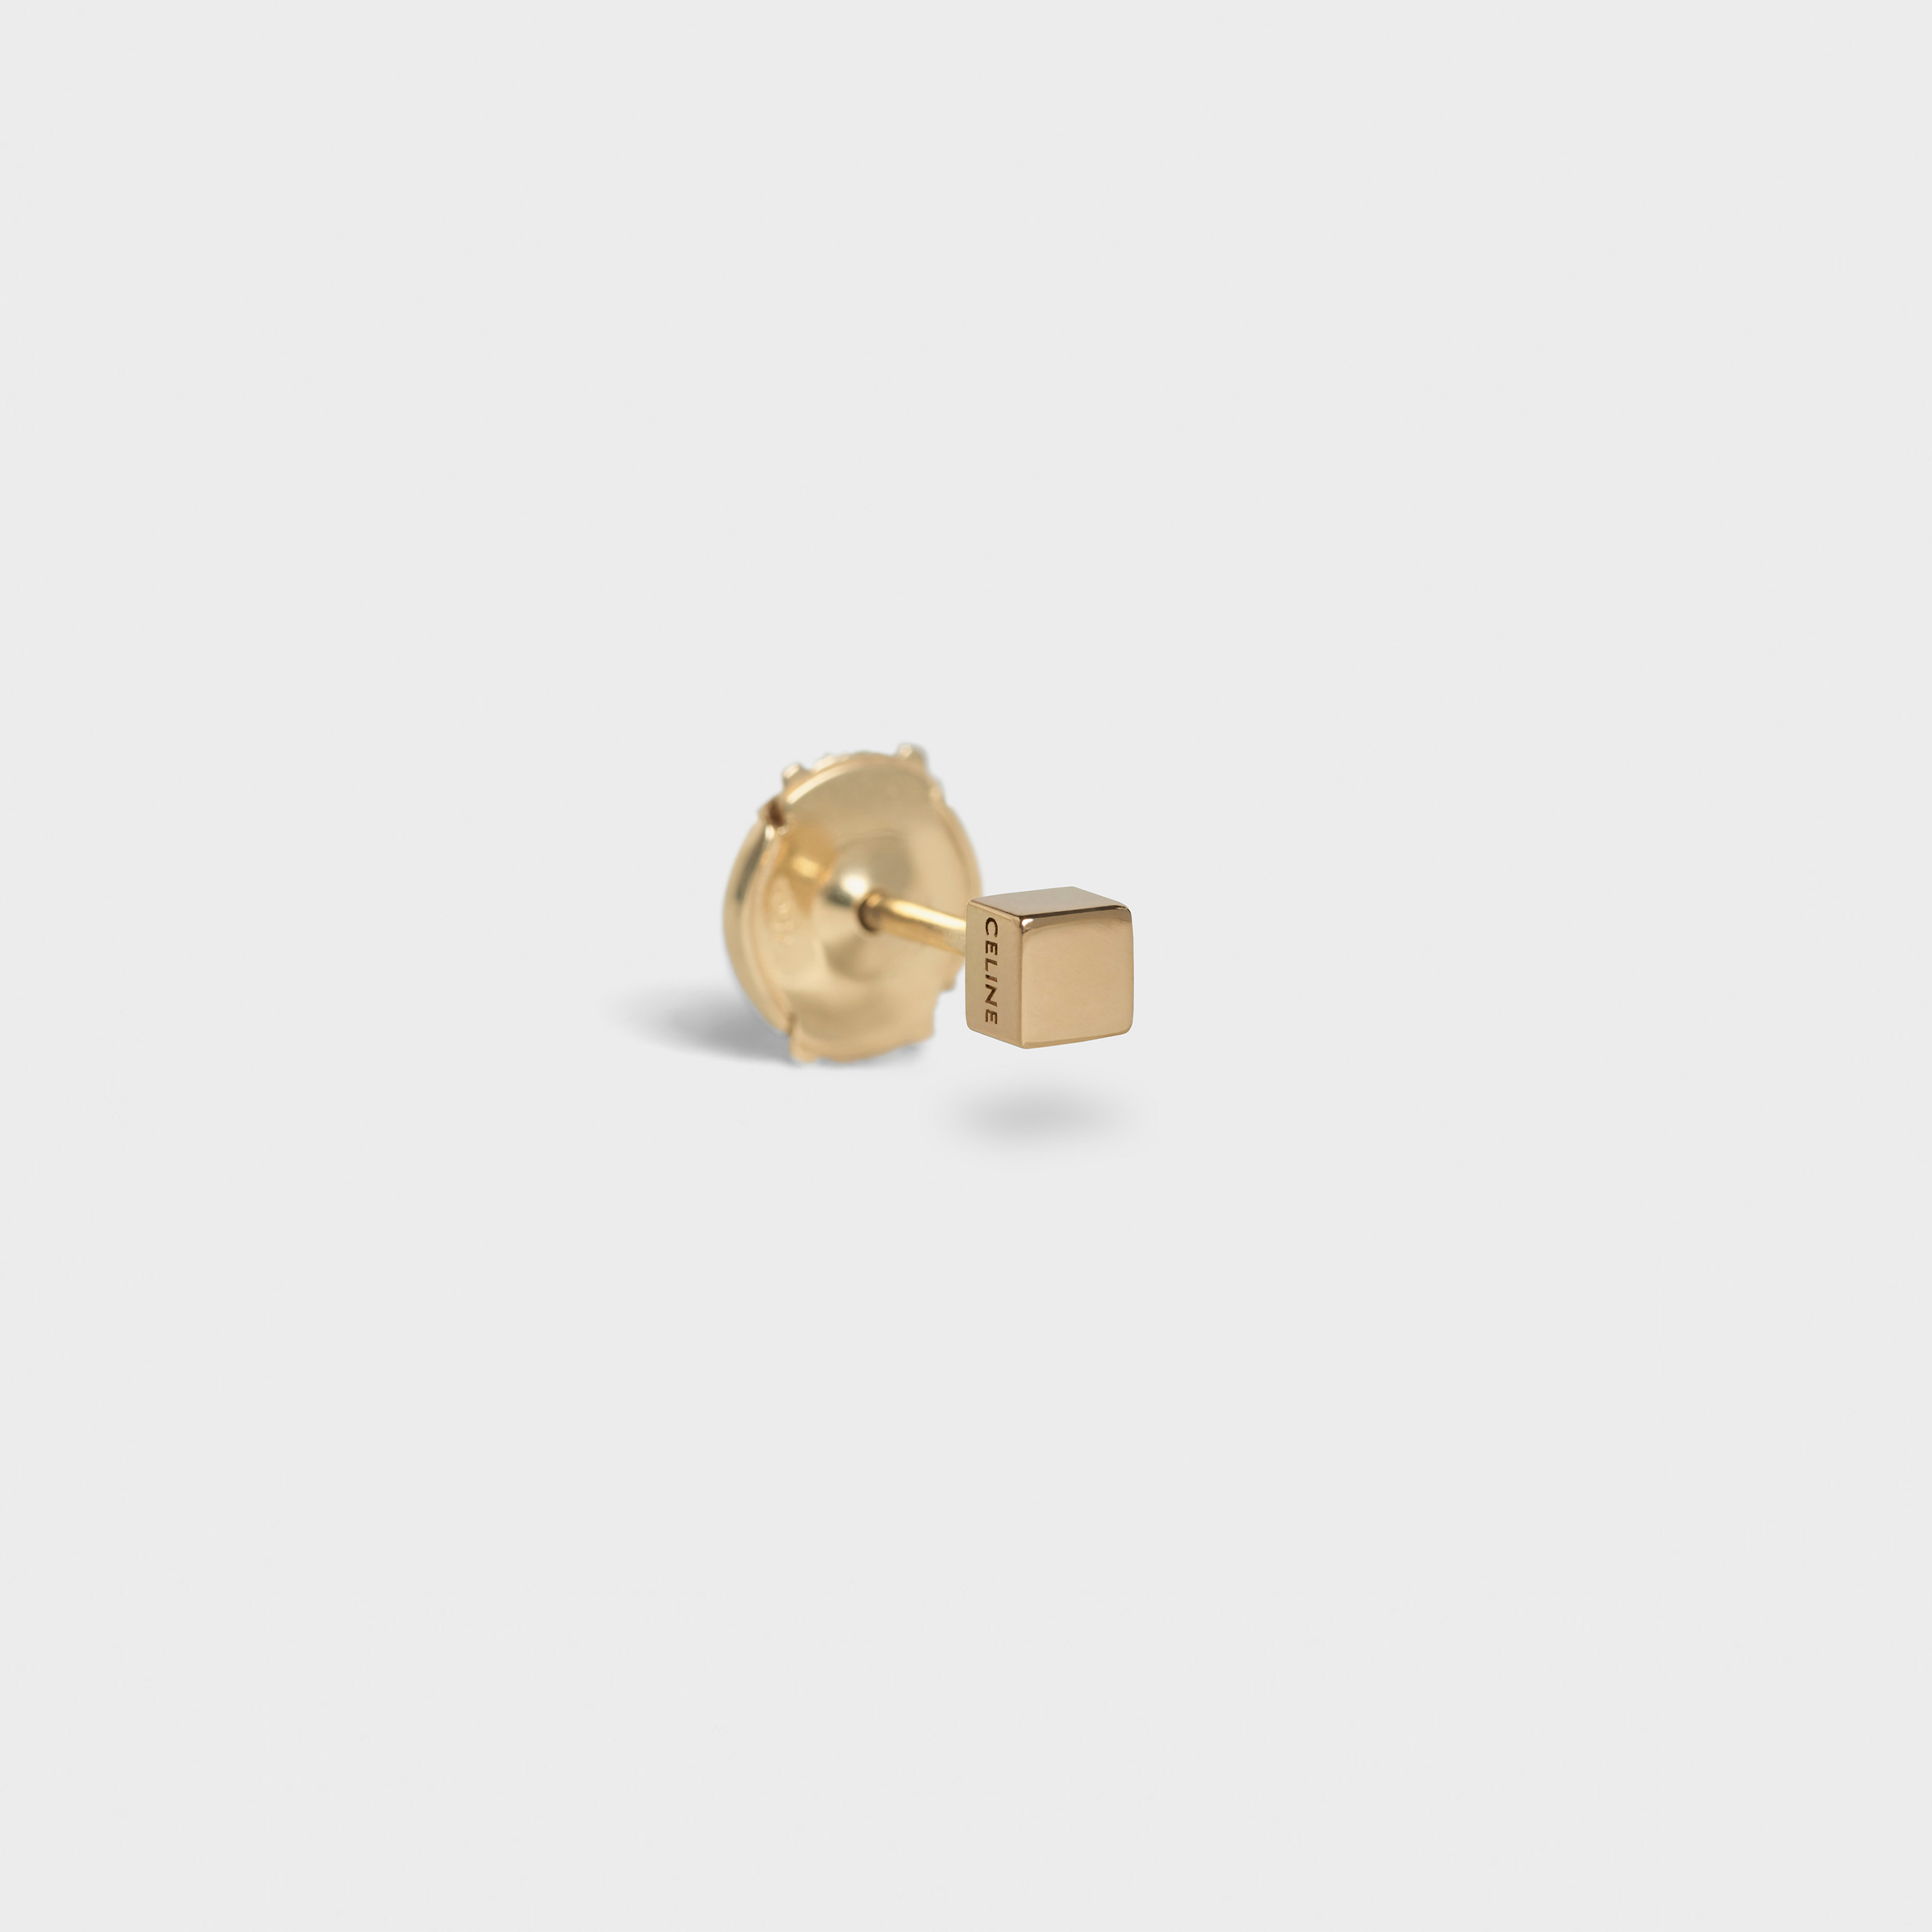 Celine Sentimental Square Stud in Yellow Gold | CELINE